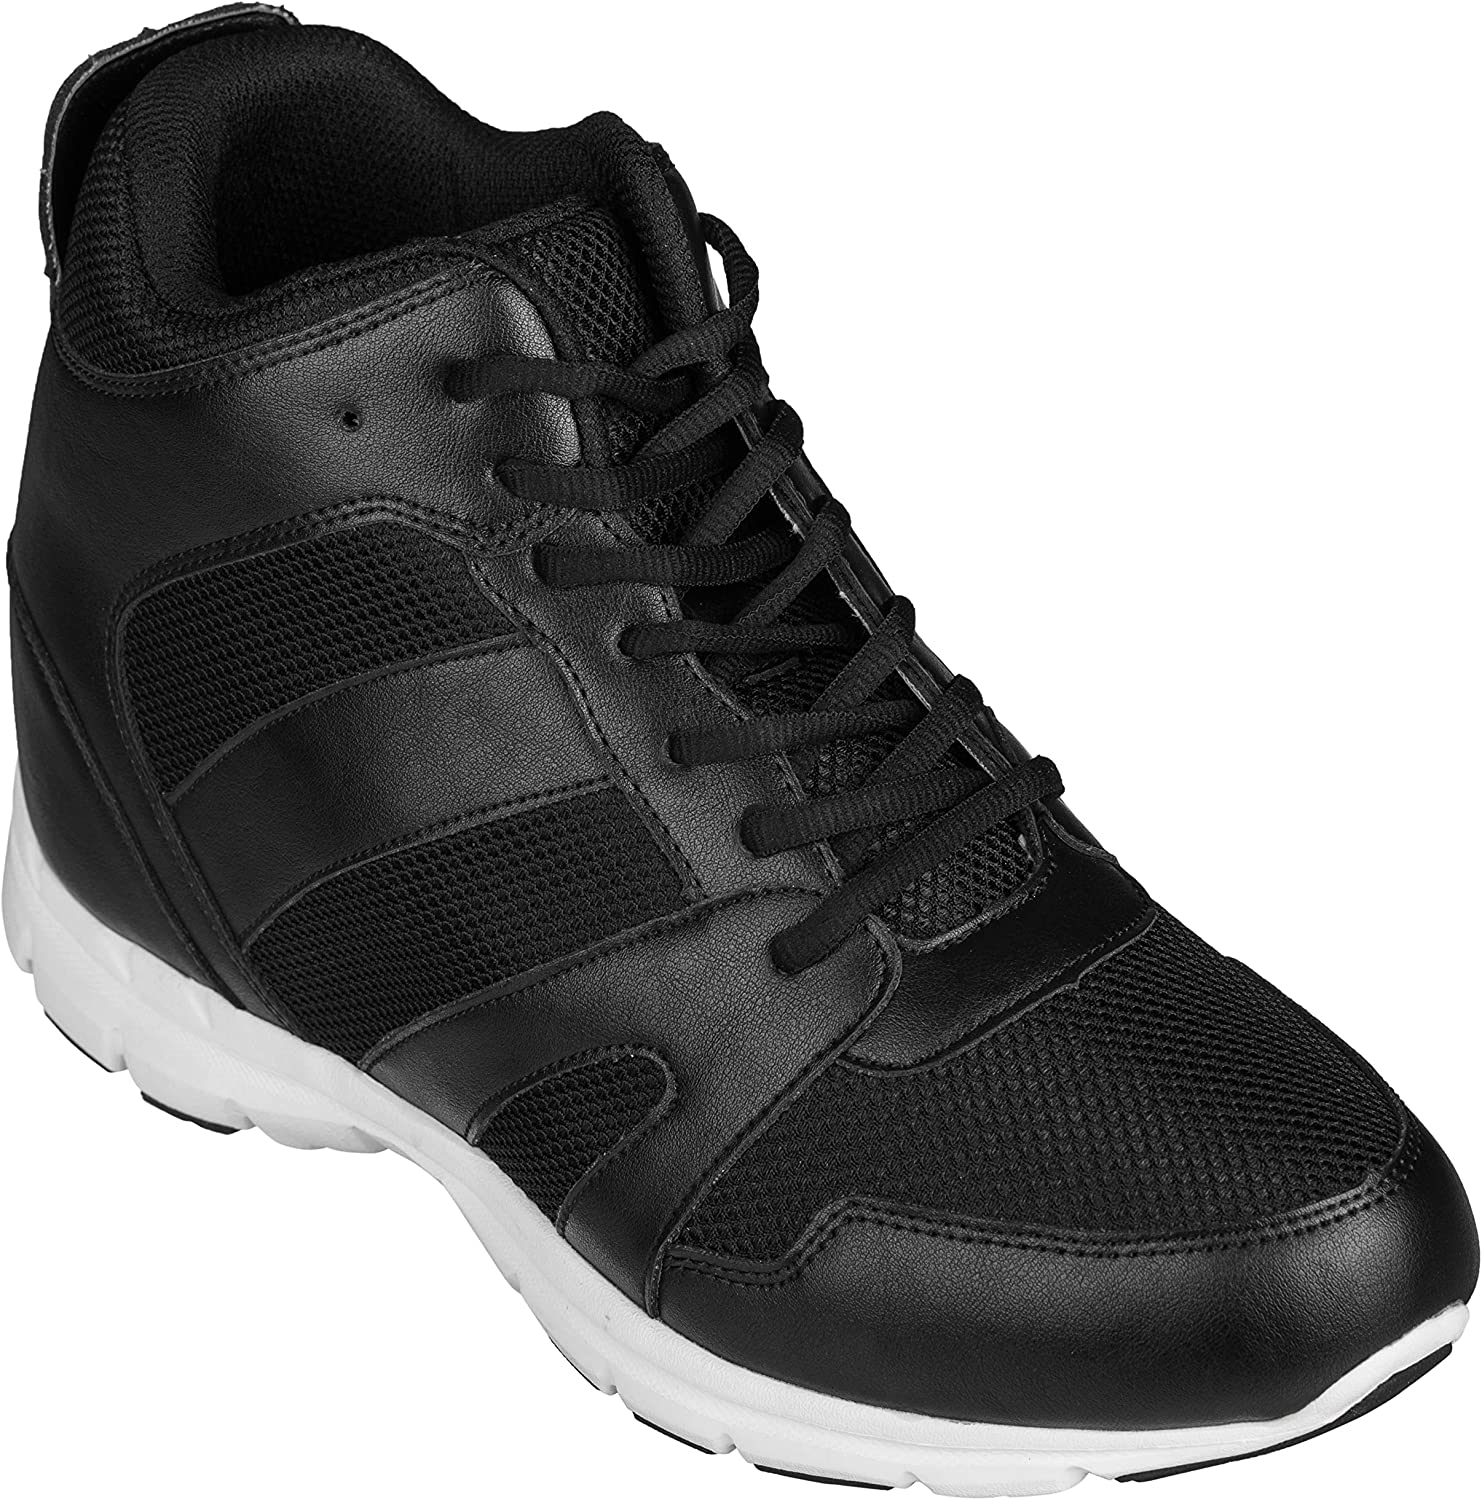 8cm Taller Height Increasing Shoes FSTL Elevator Trainers